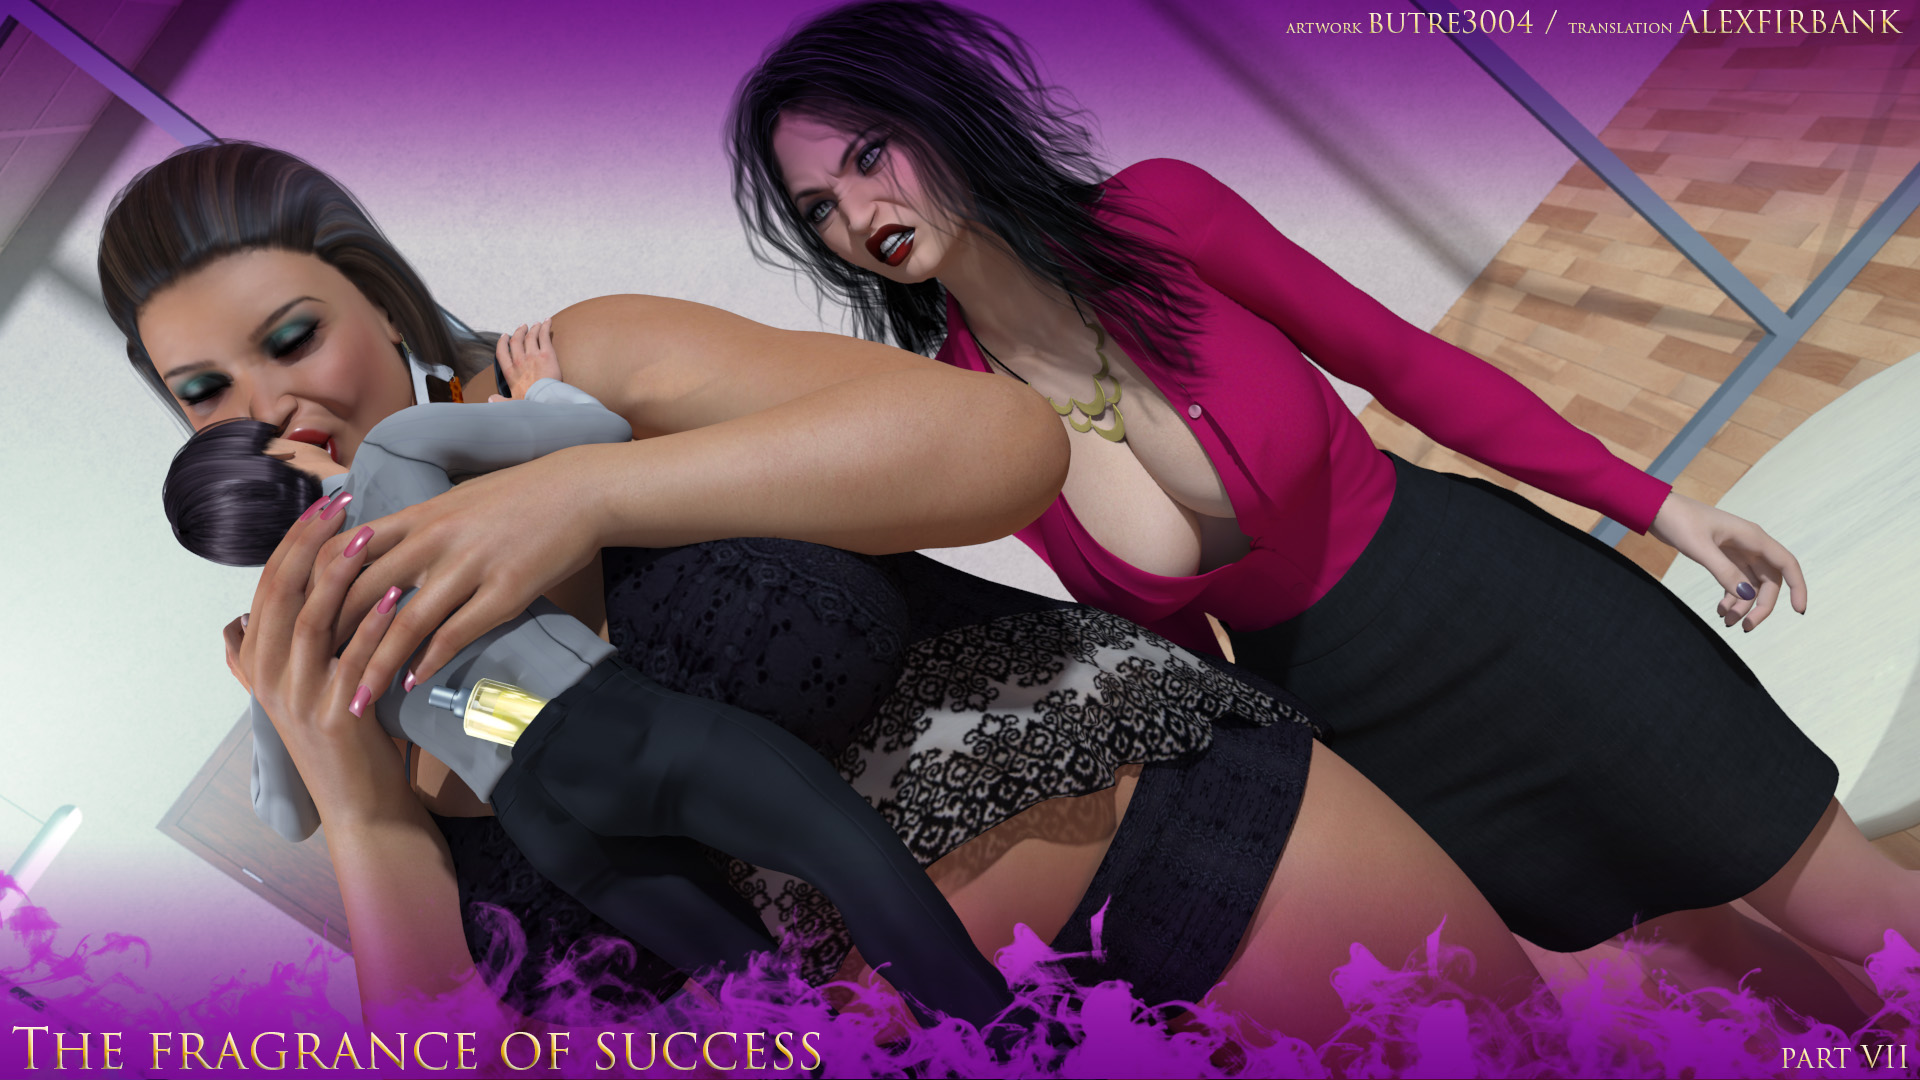 The Fragrance of Success - part VII by butre3004